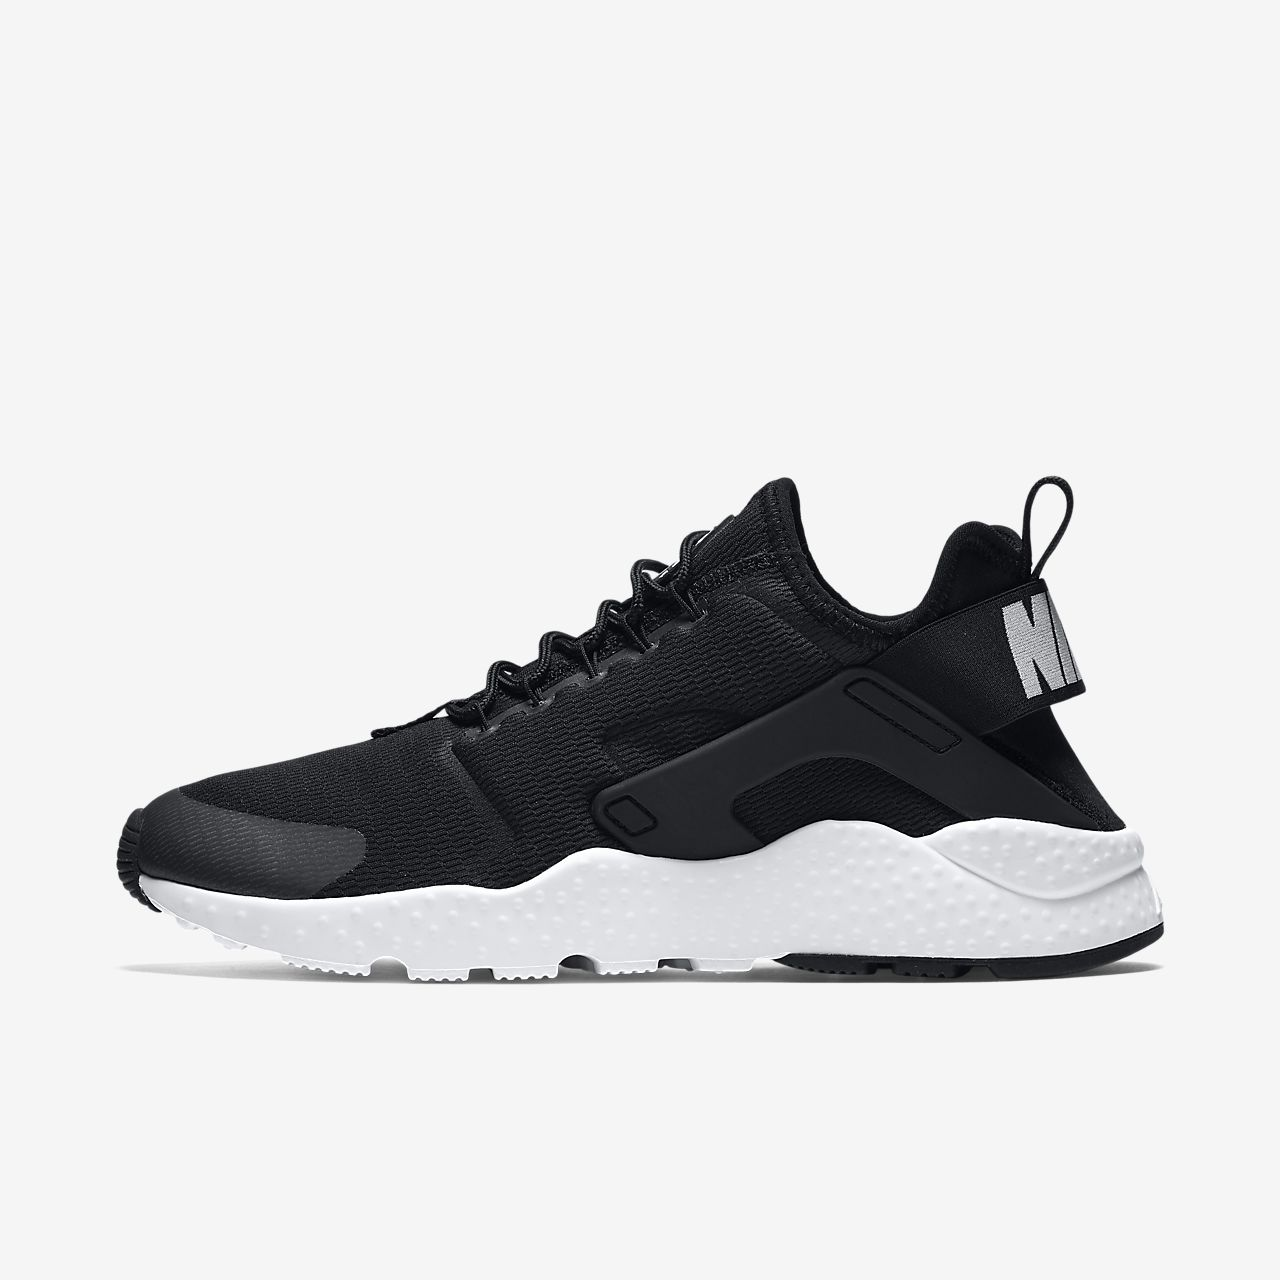 Low Resolution Nike Air Huarache Ultra Women's Shoe Nike Air Huarache Ultra  Women's Shoe